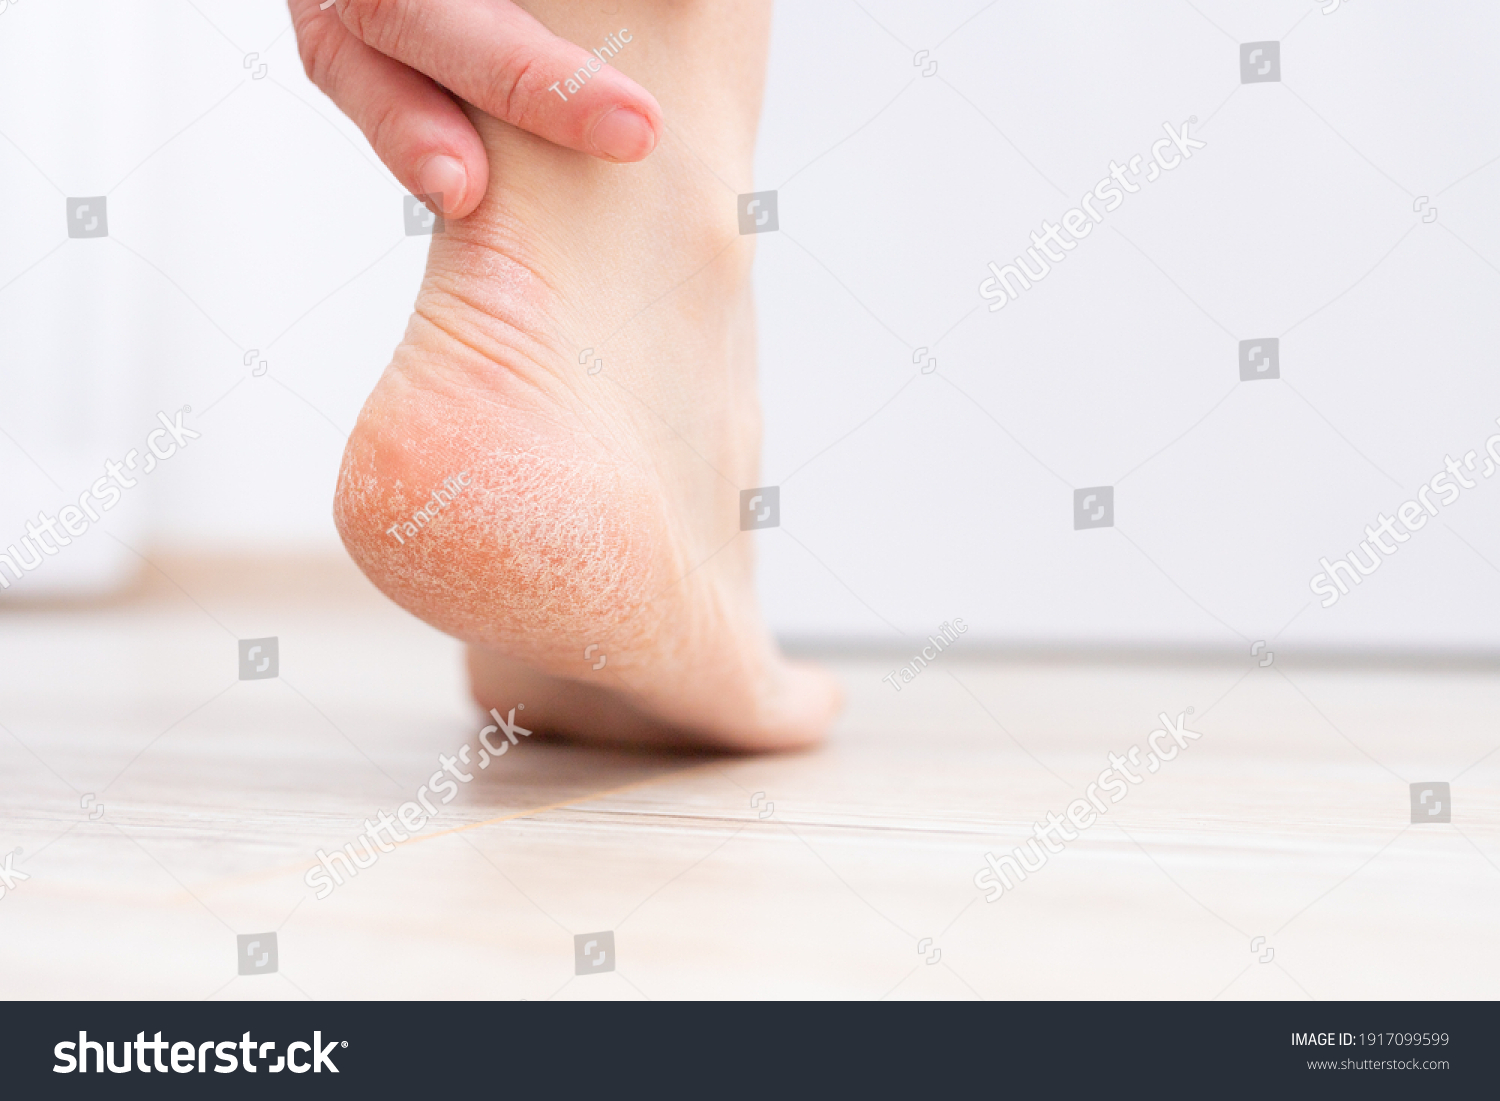 The dry skin on the heel is cracked. Treatment concept with moisturizing creams and exfoliation for healing wounds and pain when walking. Dehydrated skin on the heels of female feet #1917099599